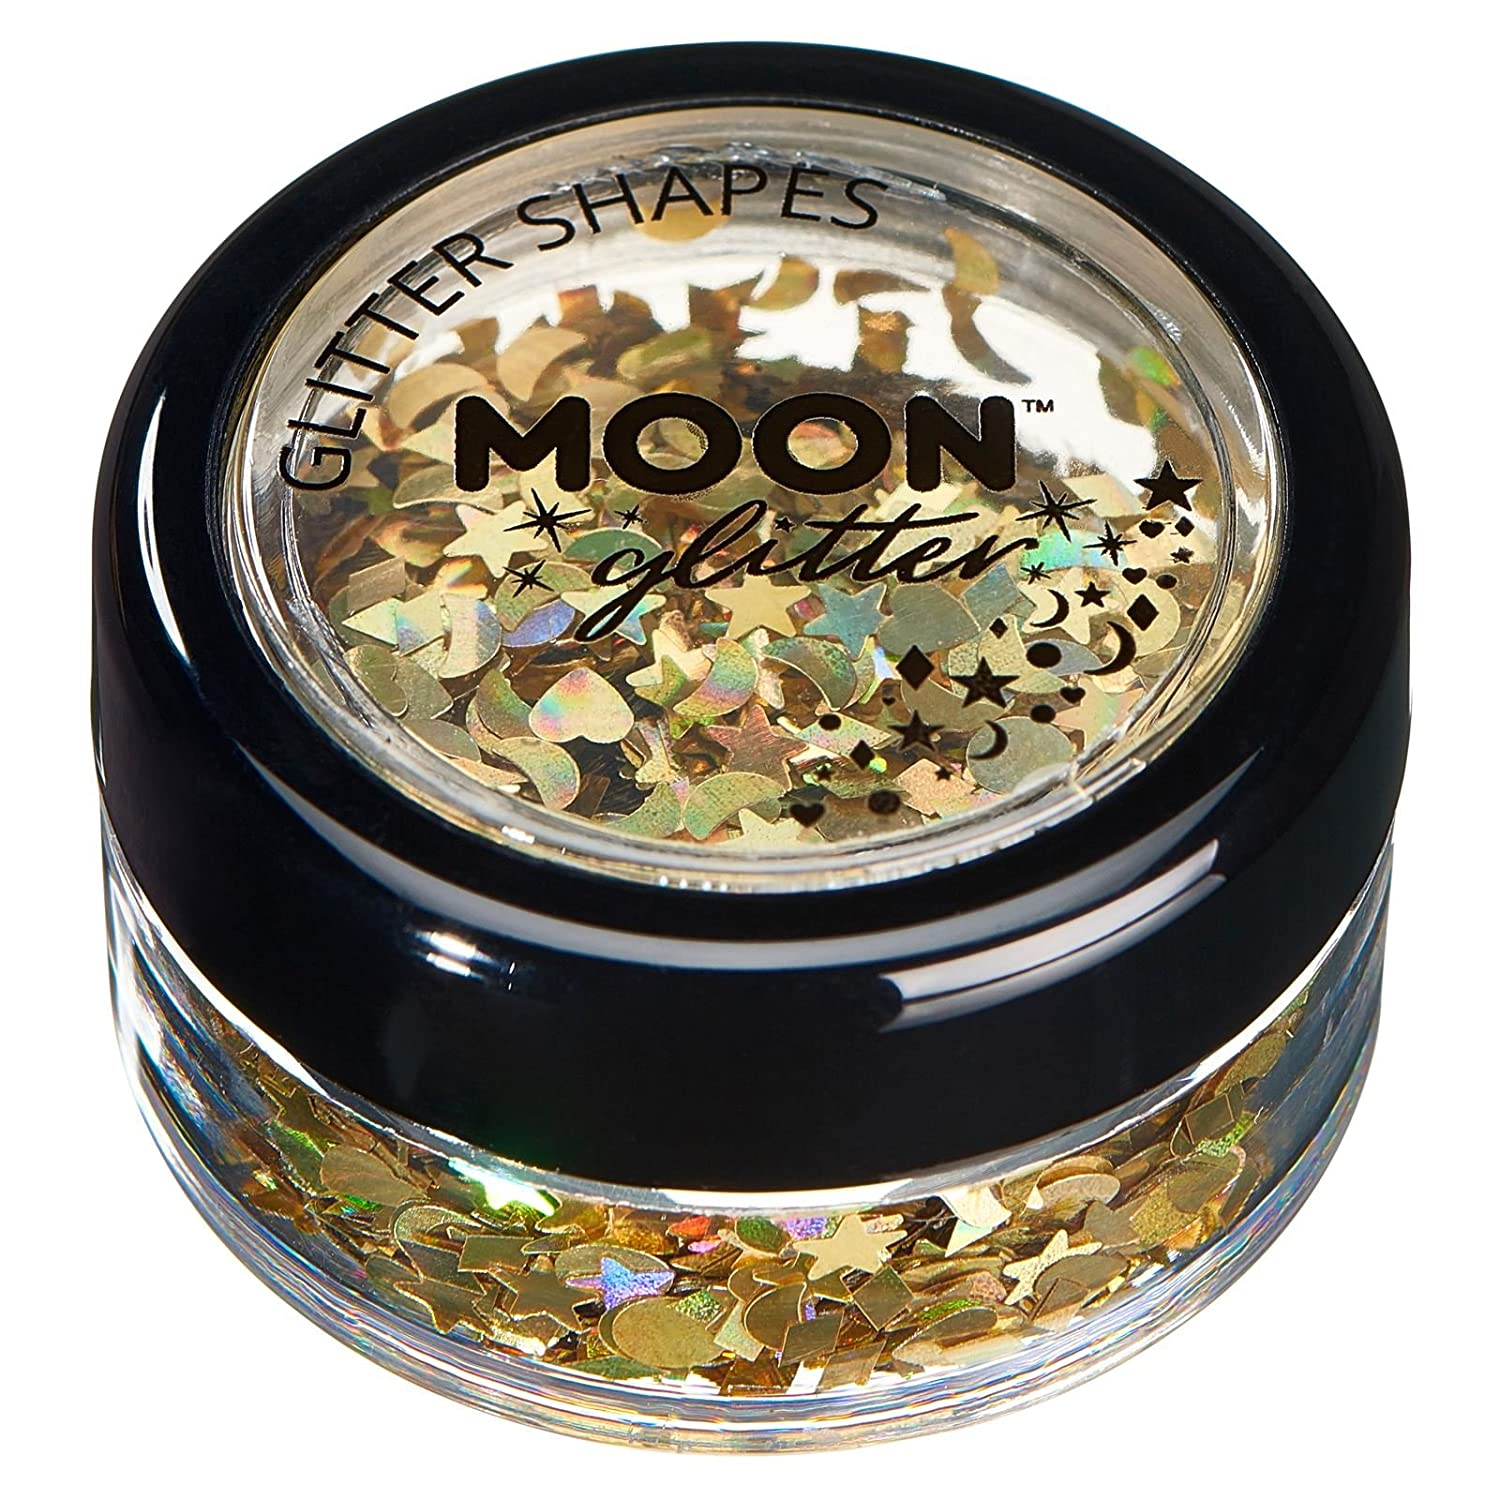 Holographic Glitter Shapes by Moon Glitter – 100% Cosmetic Glitter for Face, Body, Nails, Hair and Lips - 3g - Black